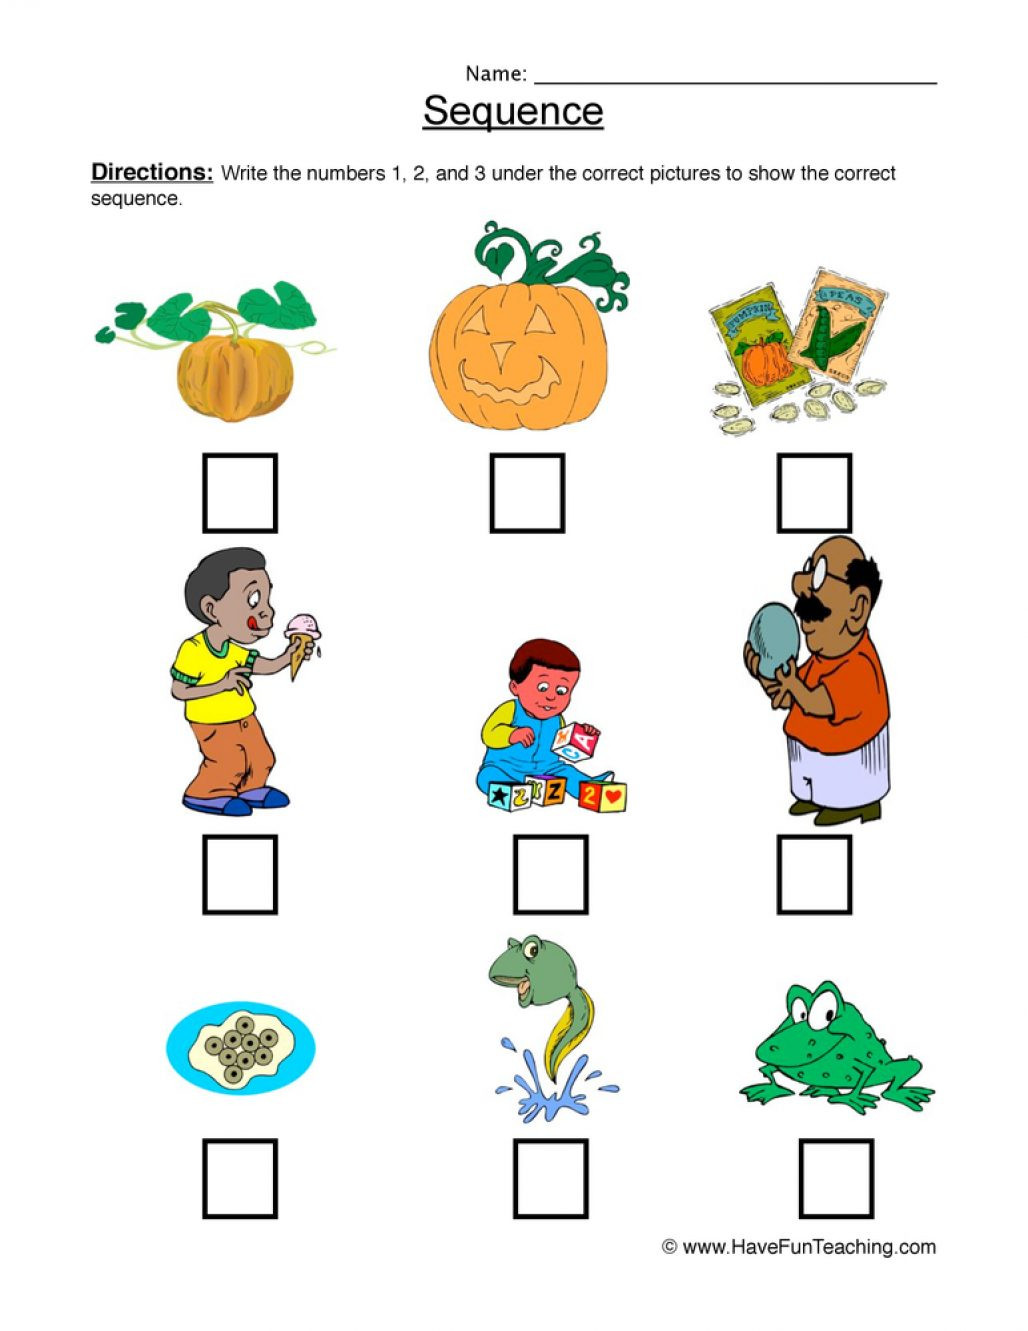 Sequence Worksheets for 1st Grade New Sequencing events Worksheet